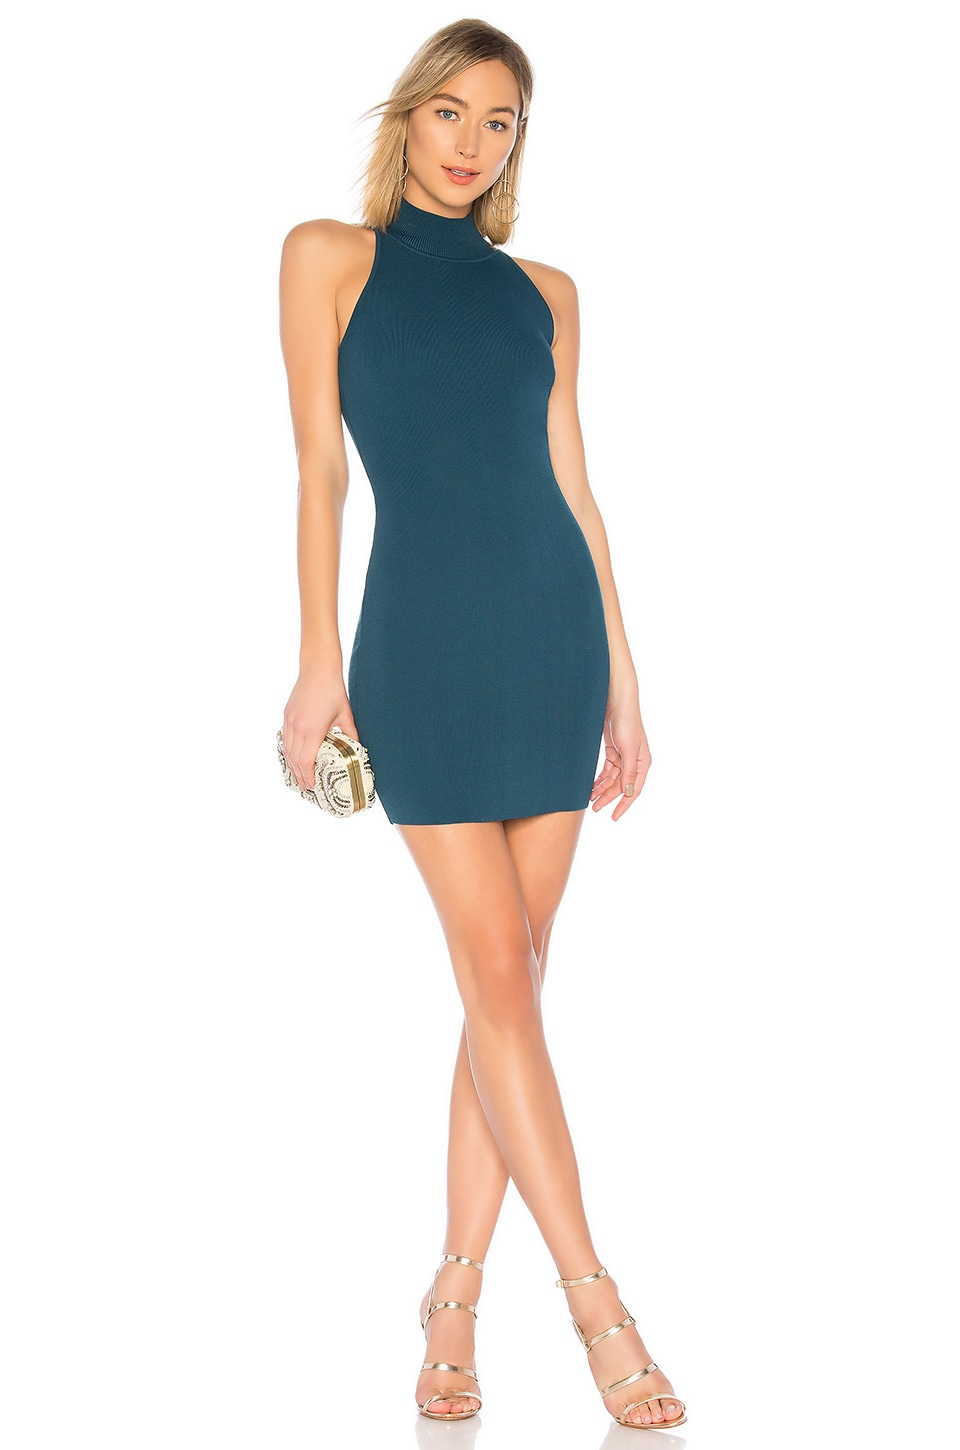 Selah Mini Dress